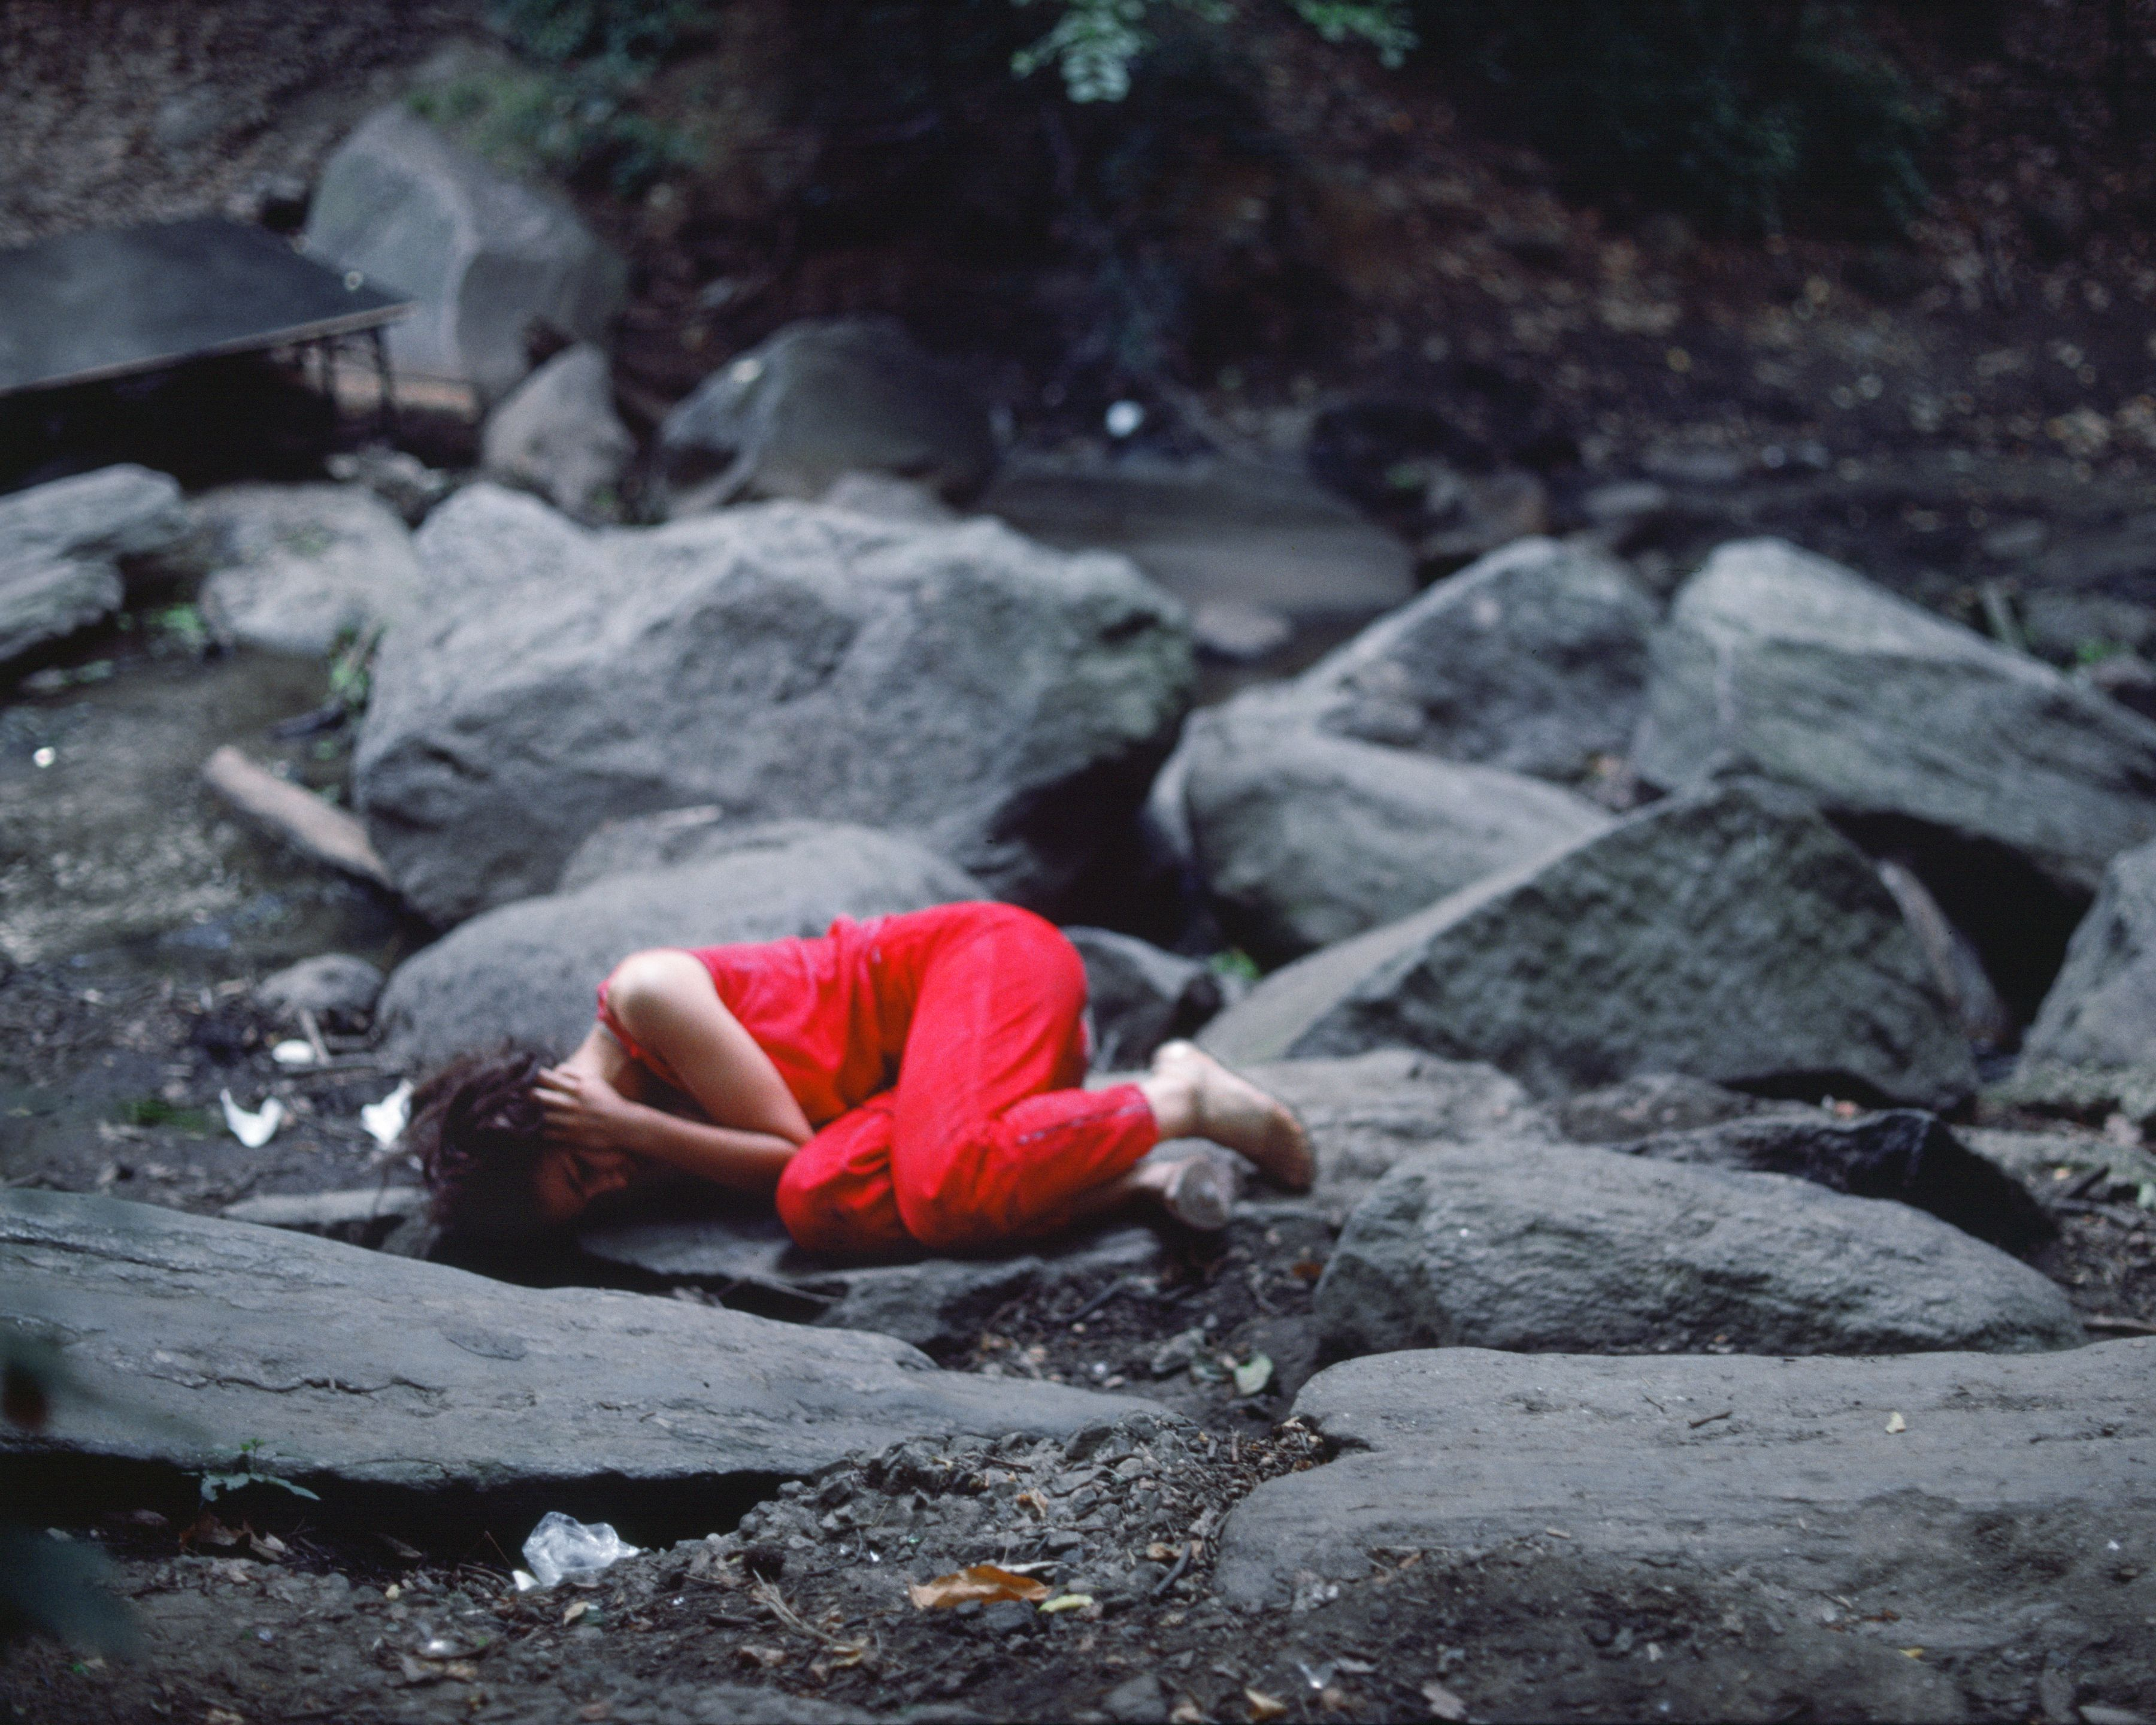 Rivers, First Draft: The Teenager curls up in a fetal position, 1982/2015, Digital C-print from Kodachrome 35mm slides in 48 parts, 16h x 20w in (40.64h x 50.80w cm)